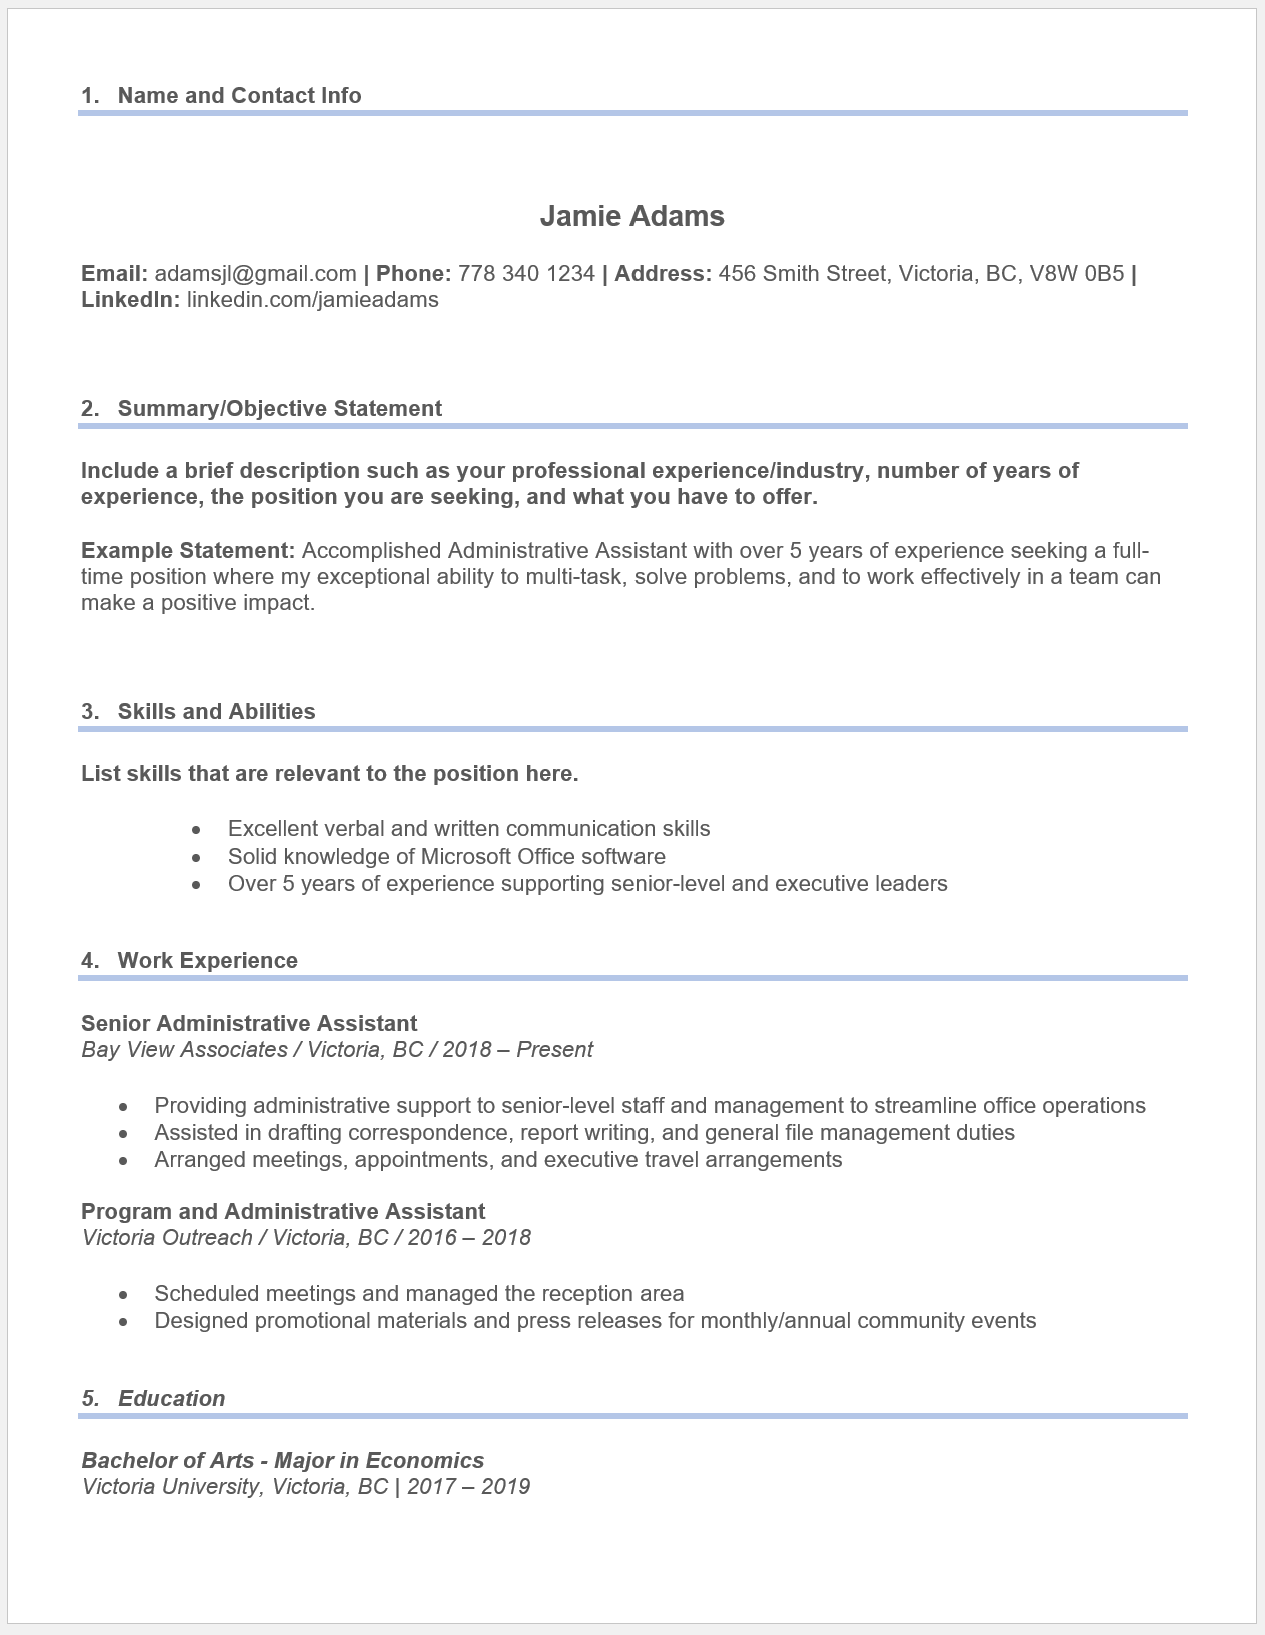 Example chronological resume for an administrative assistant position.